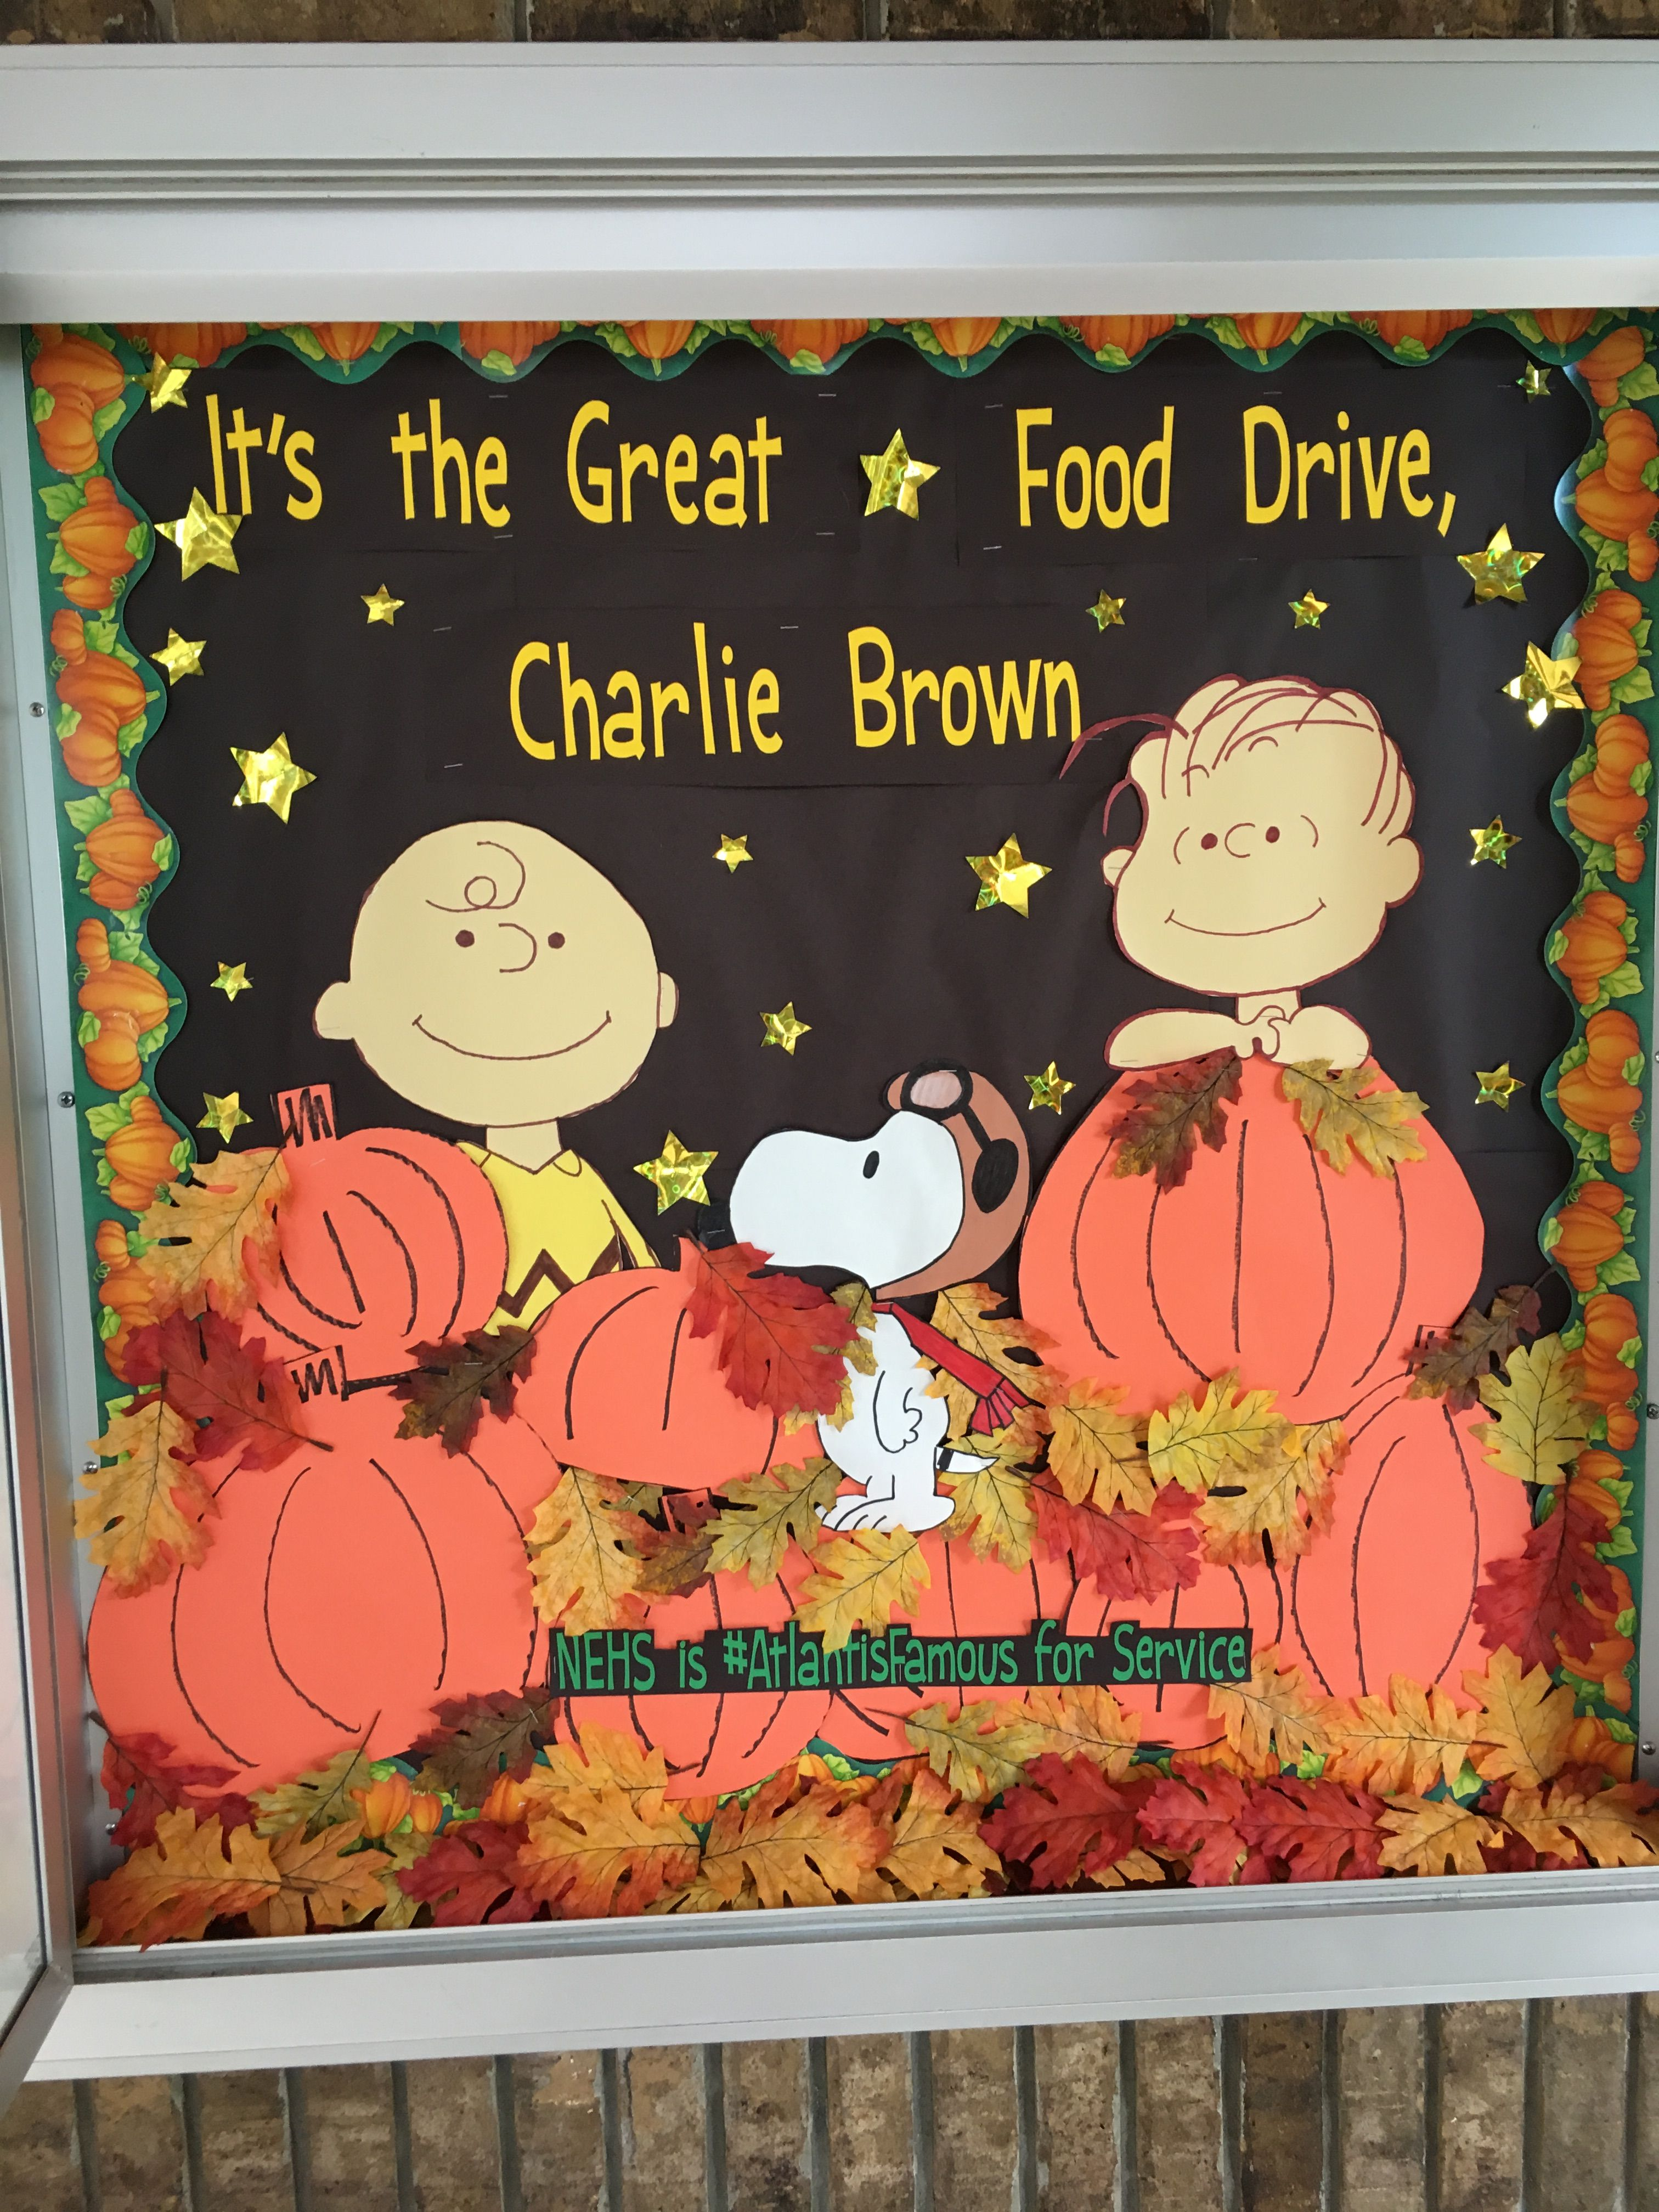 Pin by BIZEMOM JENNY on CREATIVE ME Food drive, Great